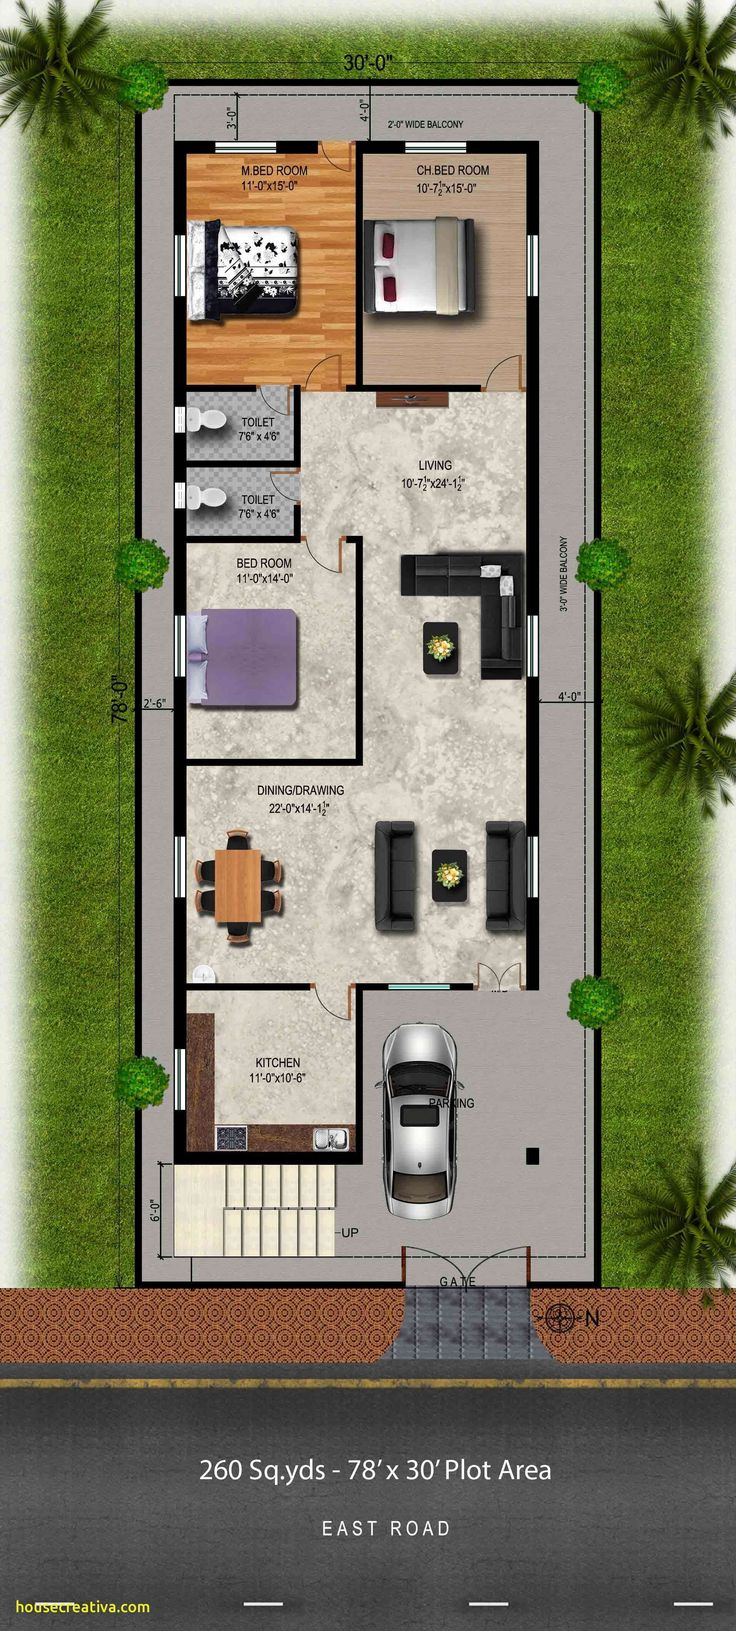 Download free plans 260 sq yds 30x78 sq ft east face house